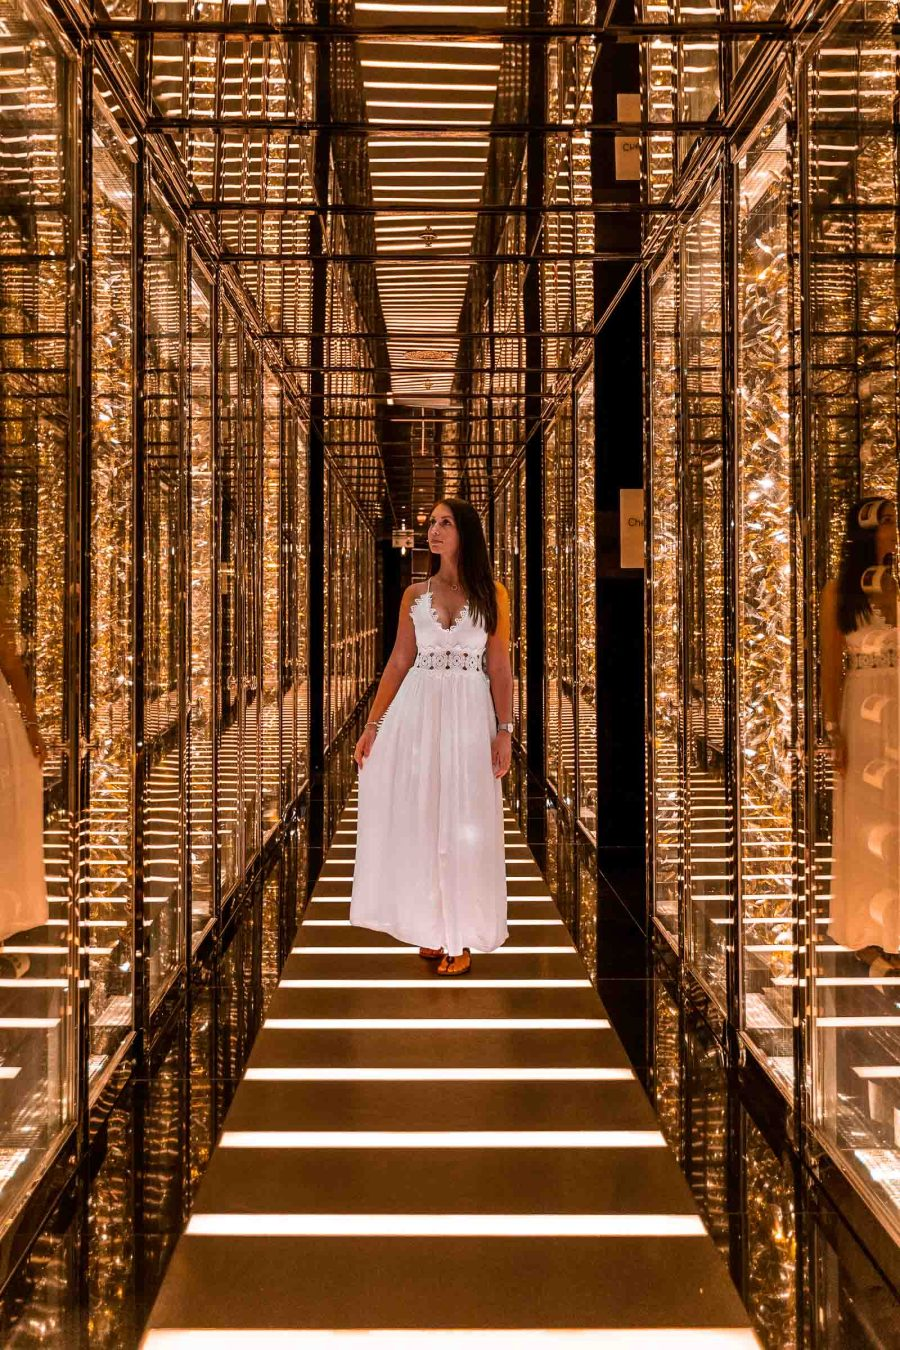 Girl in white dress standing in the middle of a golden corridor